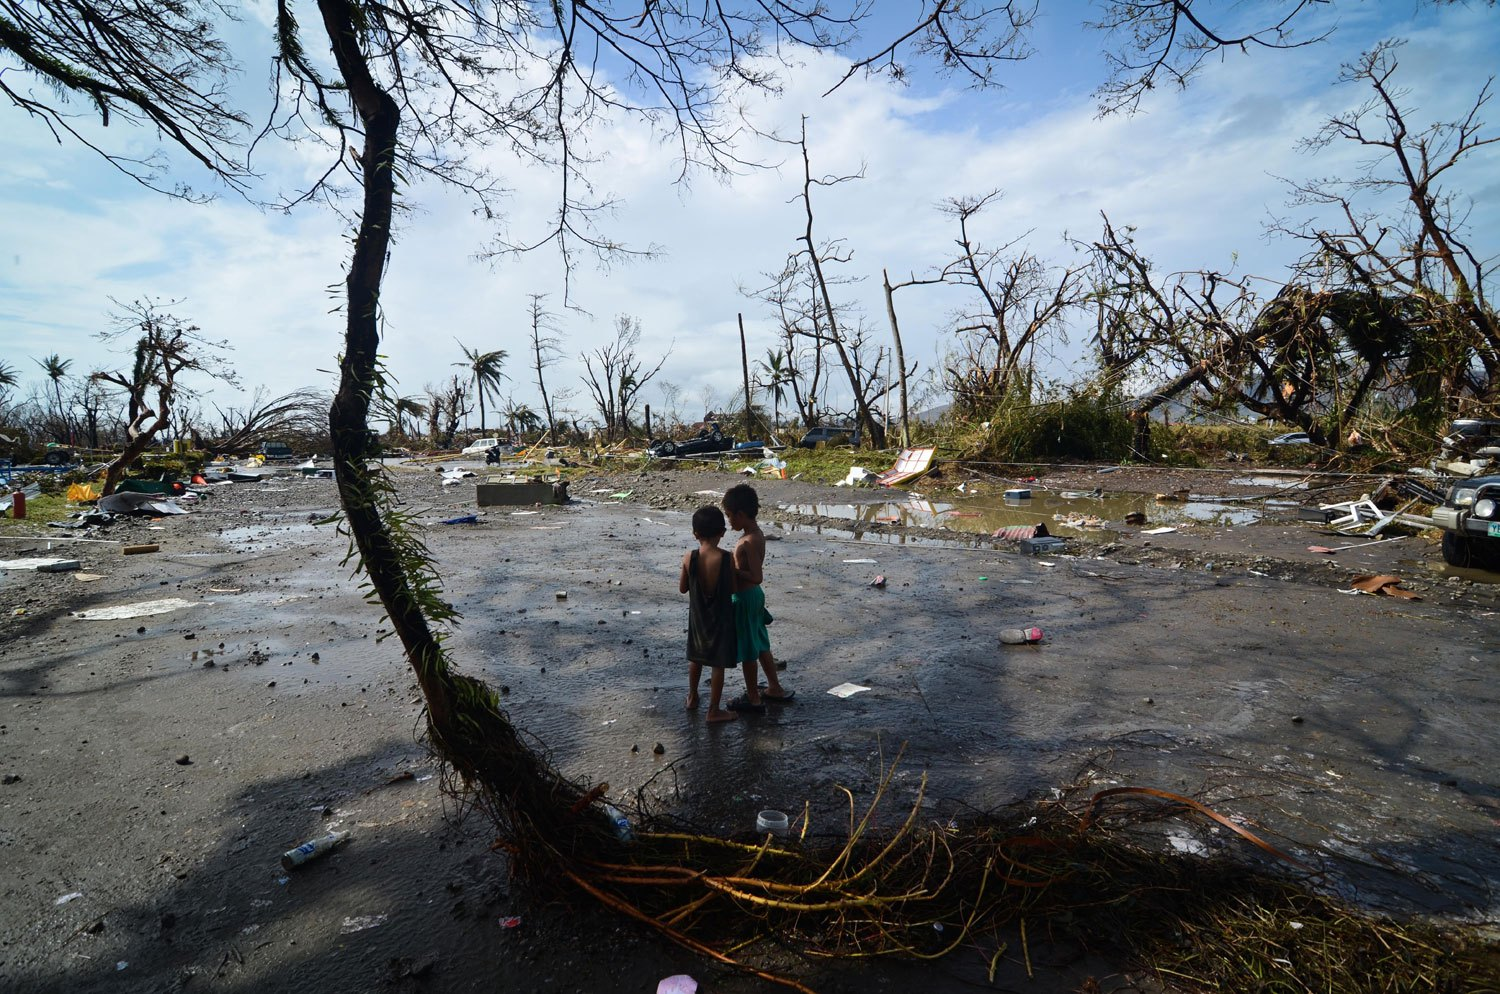 Two young boys look at the devastation in the aftermath of typhoon Haiyan on Nov. 10, 2013 in Tacloban City, Leyte, Philippines.